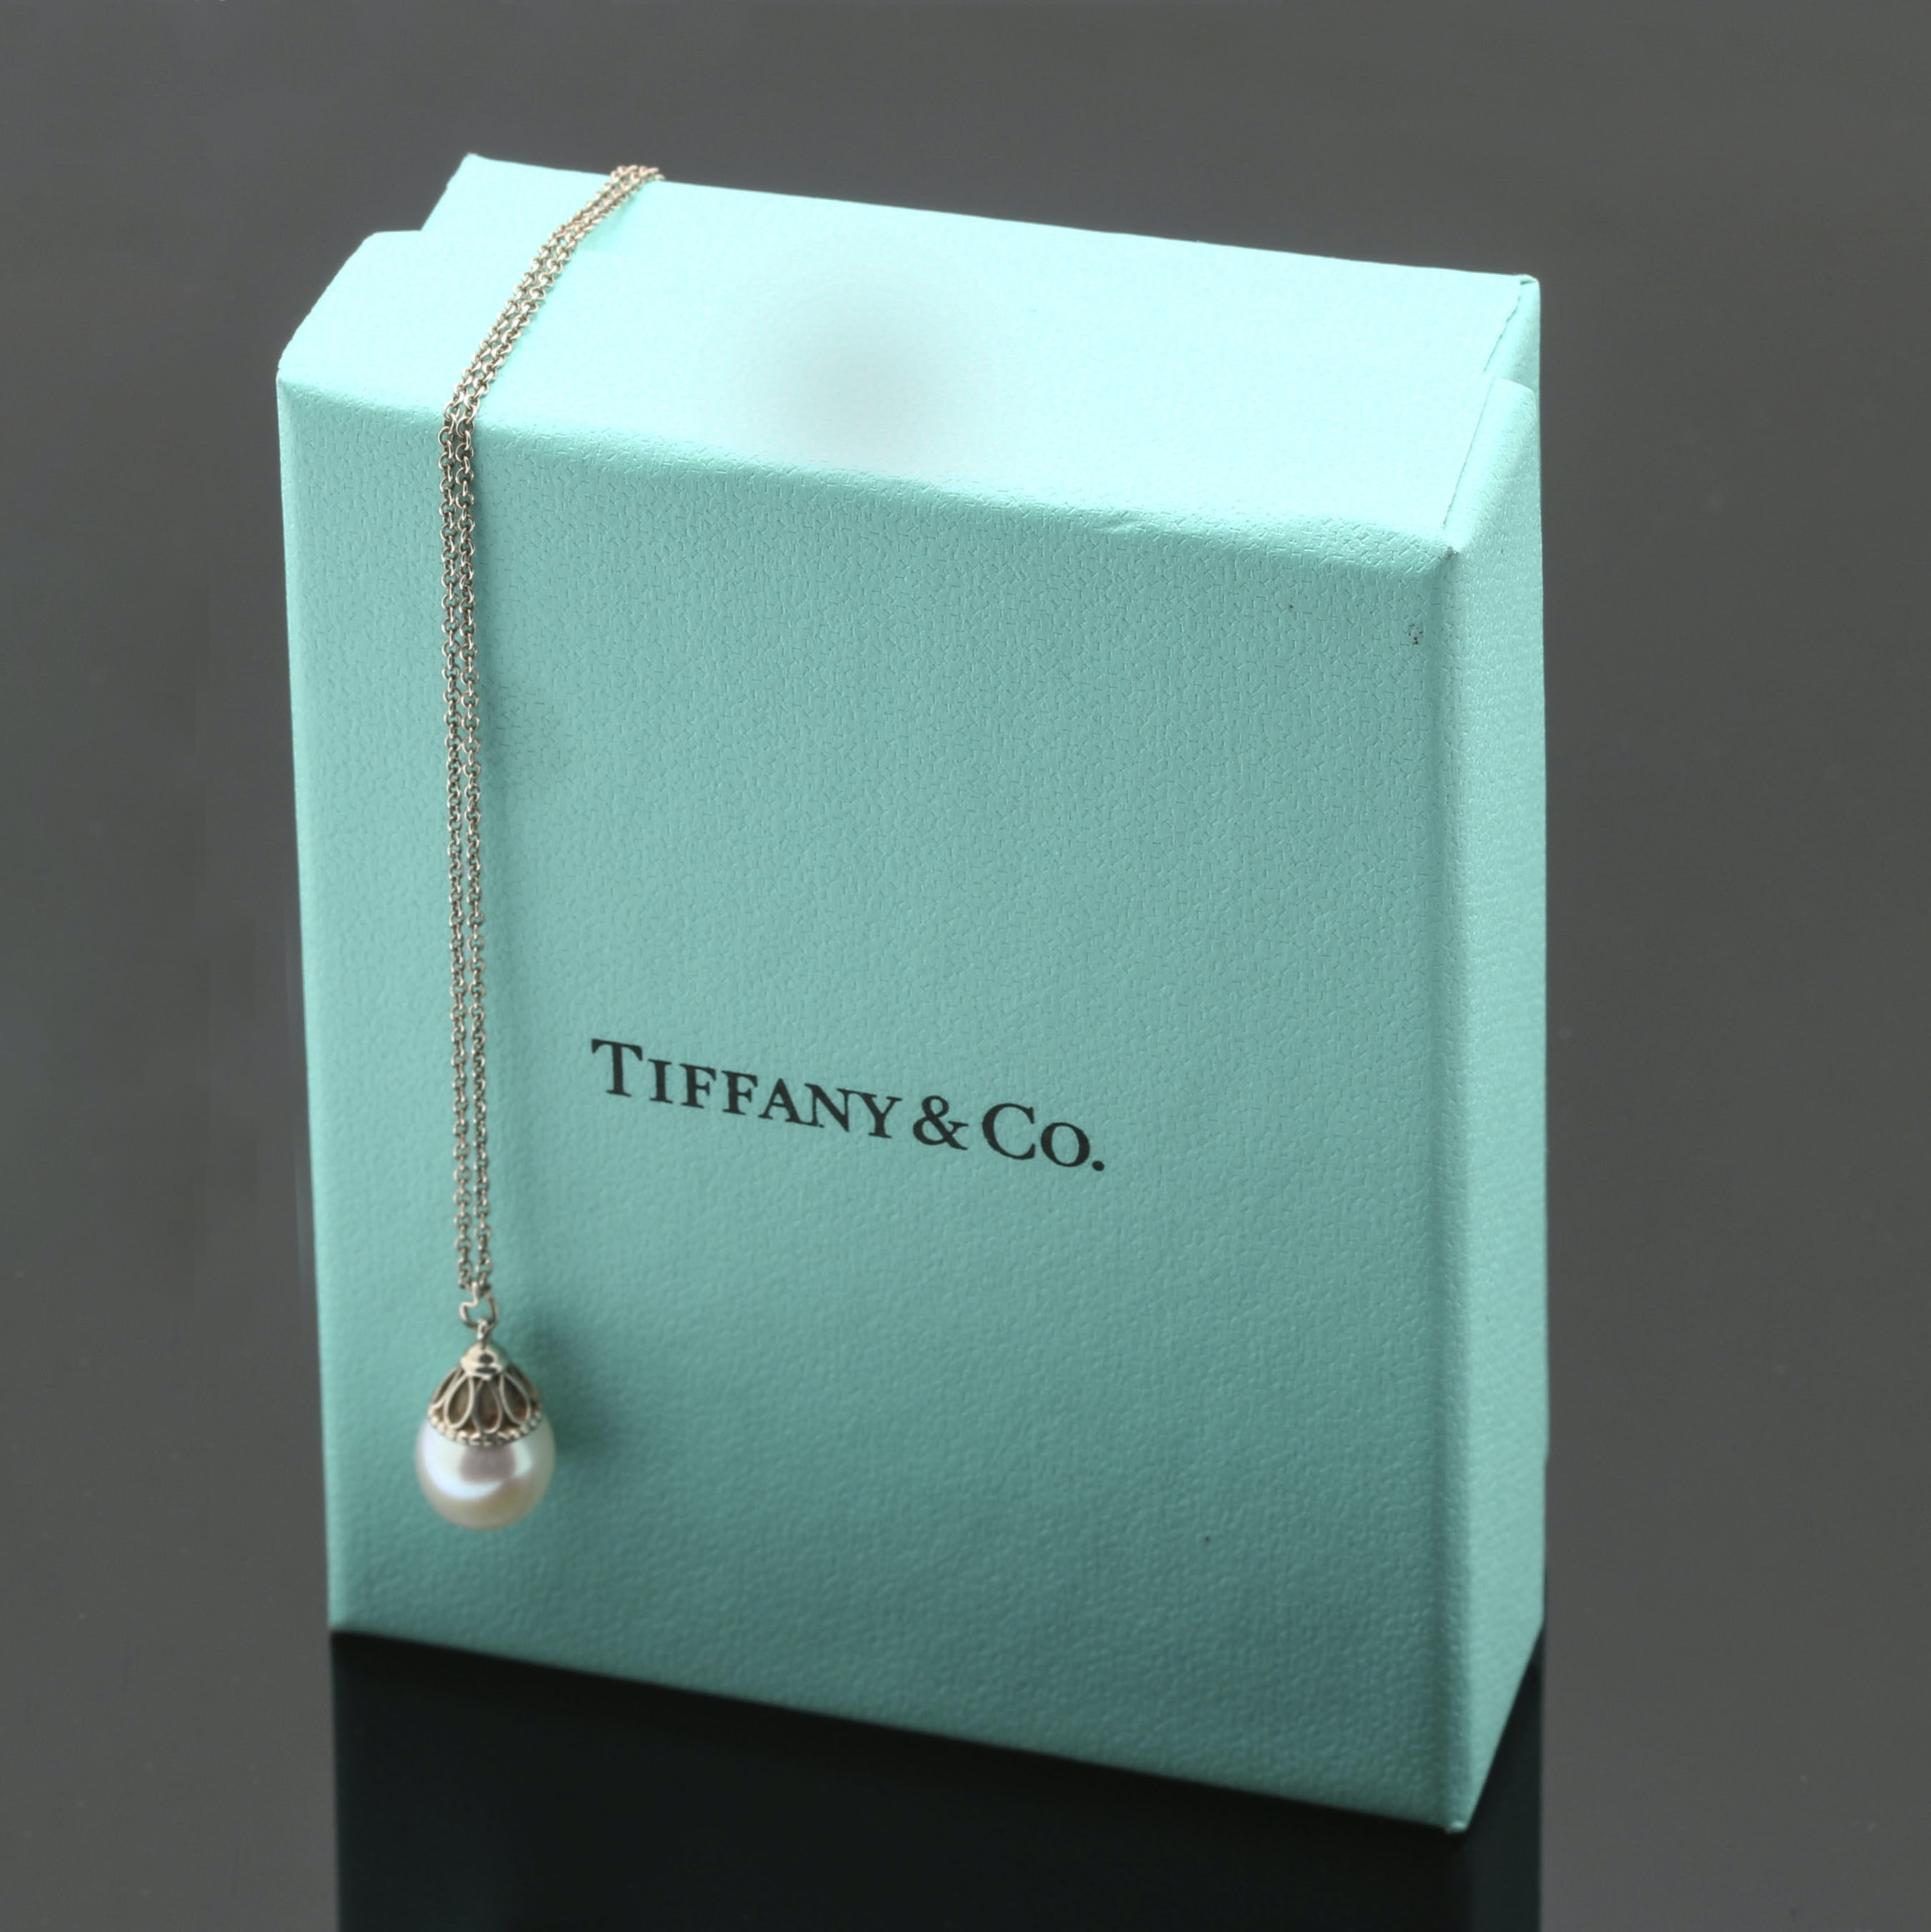 "Tiffany & Co. Sterling Silver Pearl ""Ziegfeld Collection"" Pendant Necklace"